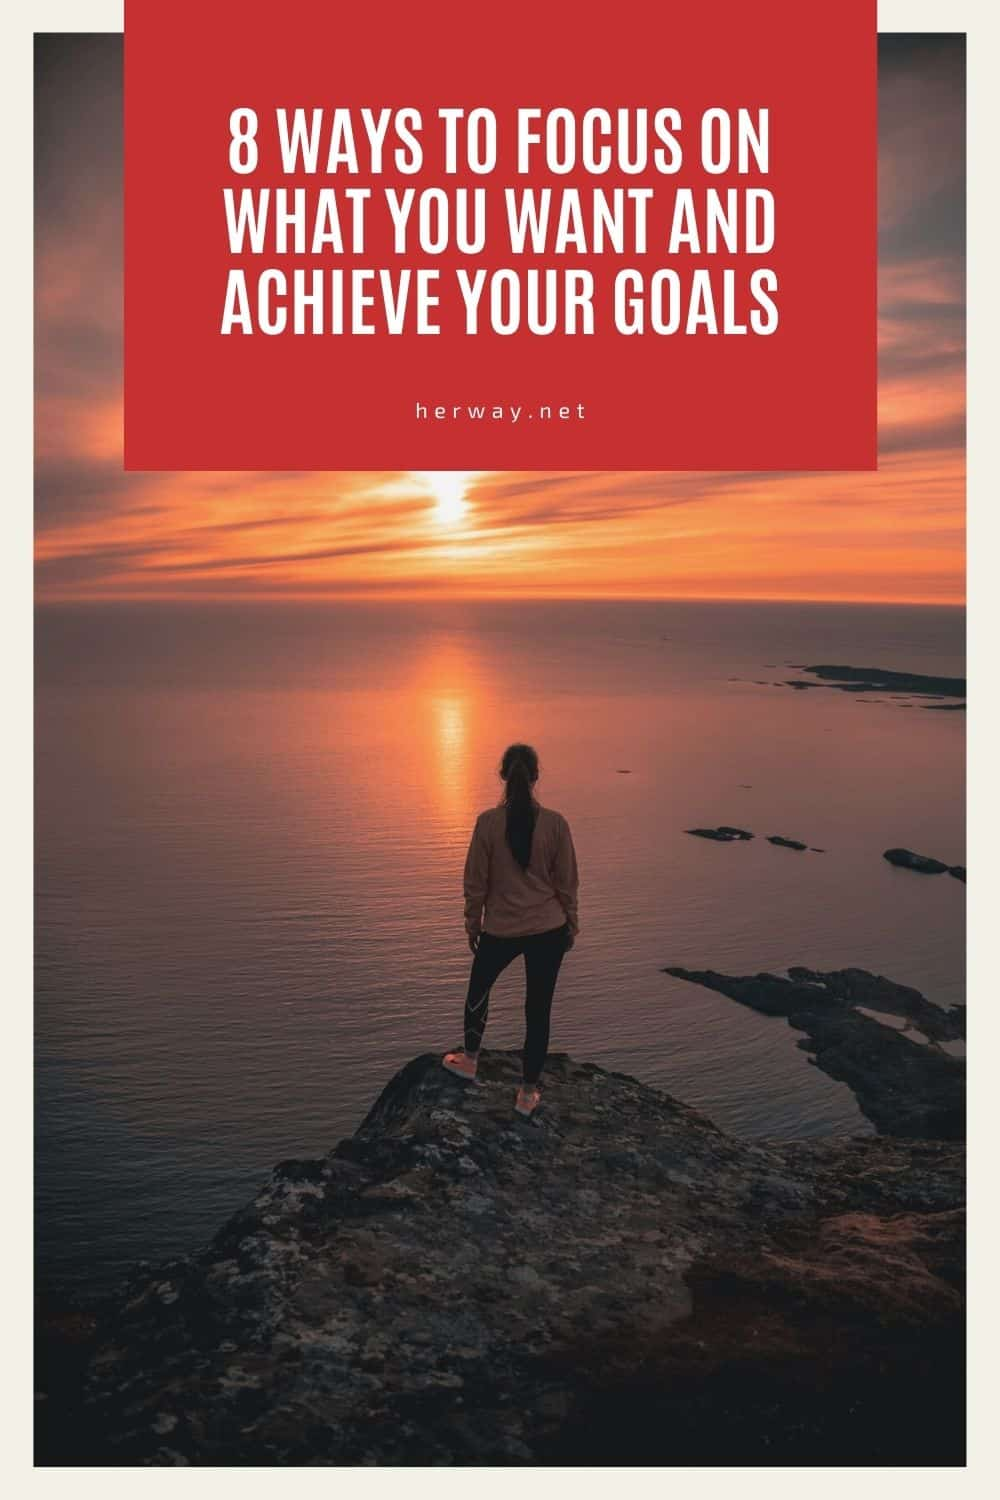 8 Ways To Focus On What You Want And Achieve Your Goals